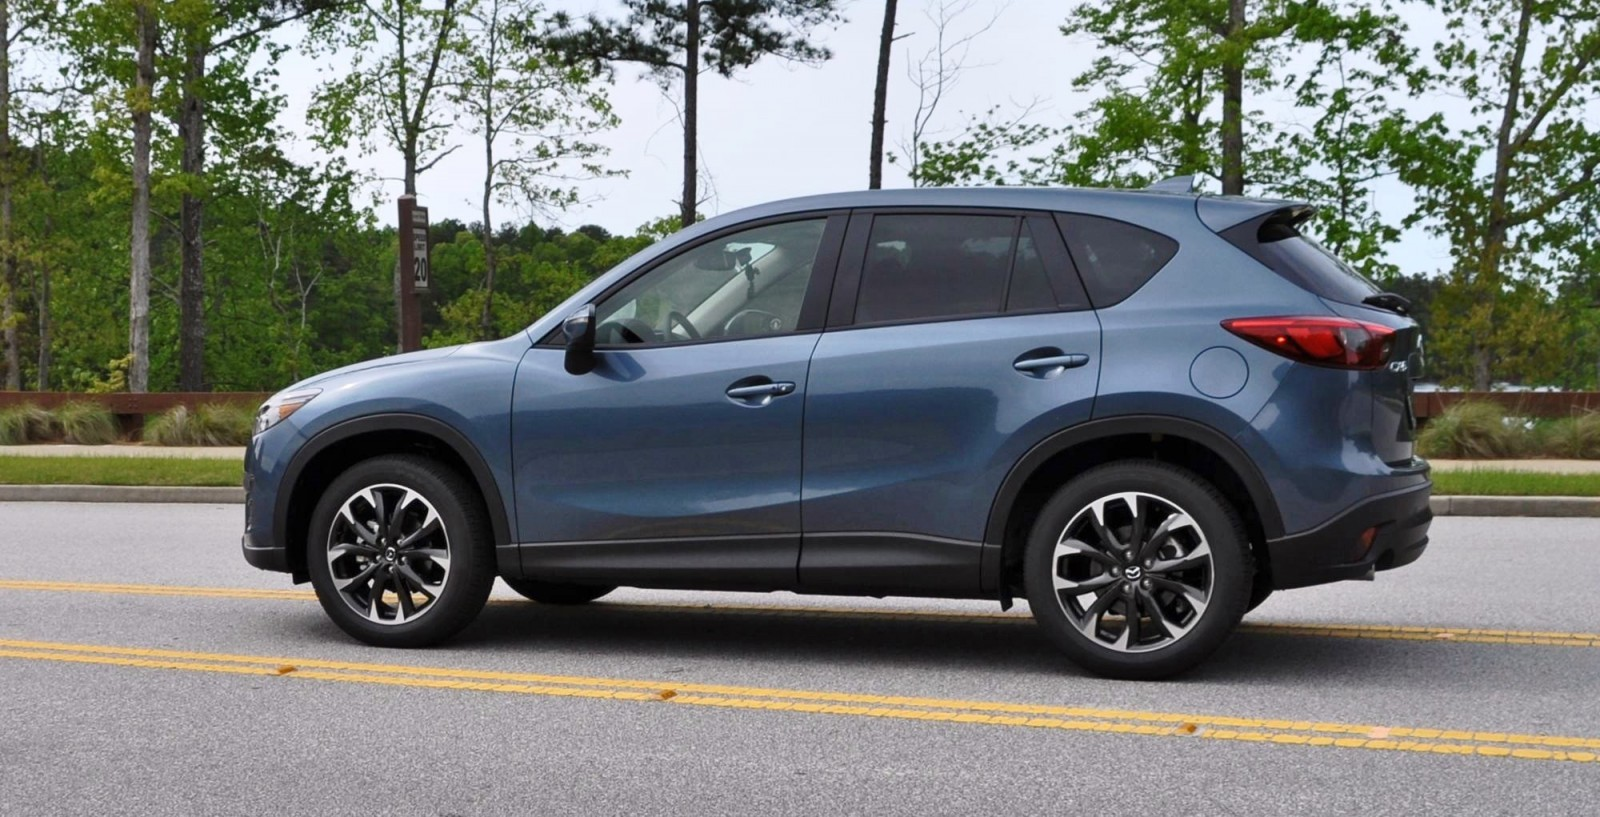 2015 mazda cx 5 preview autos post. Black Bedroom Furniture Sets. Home Design Ideas